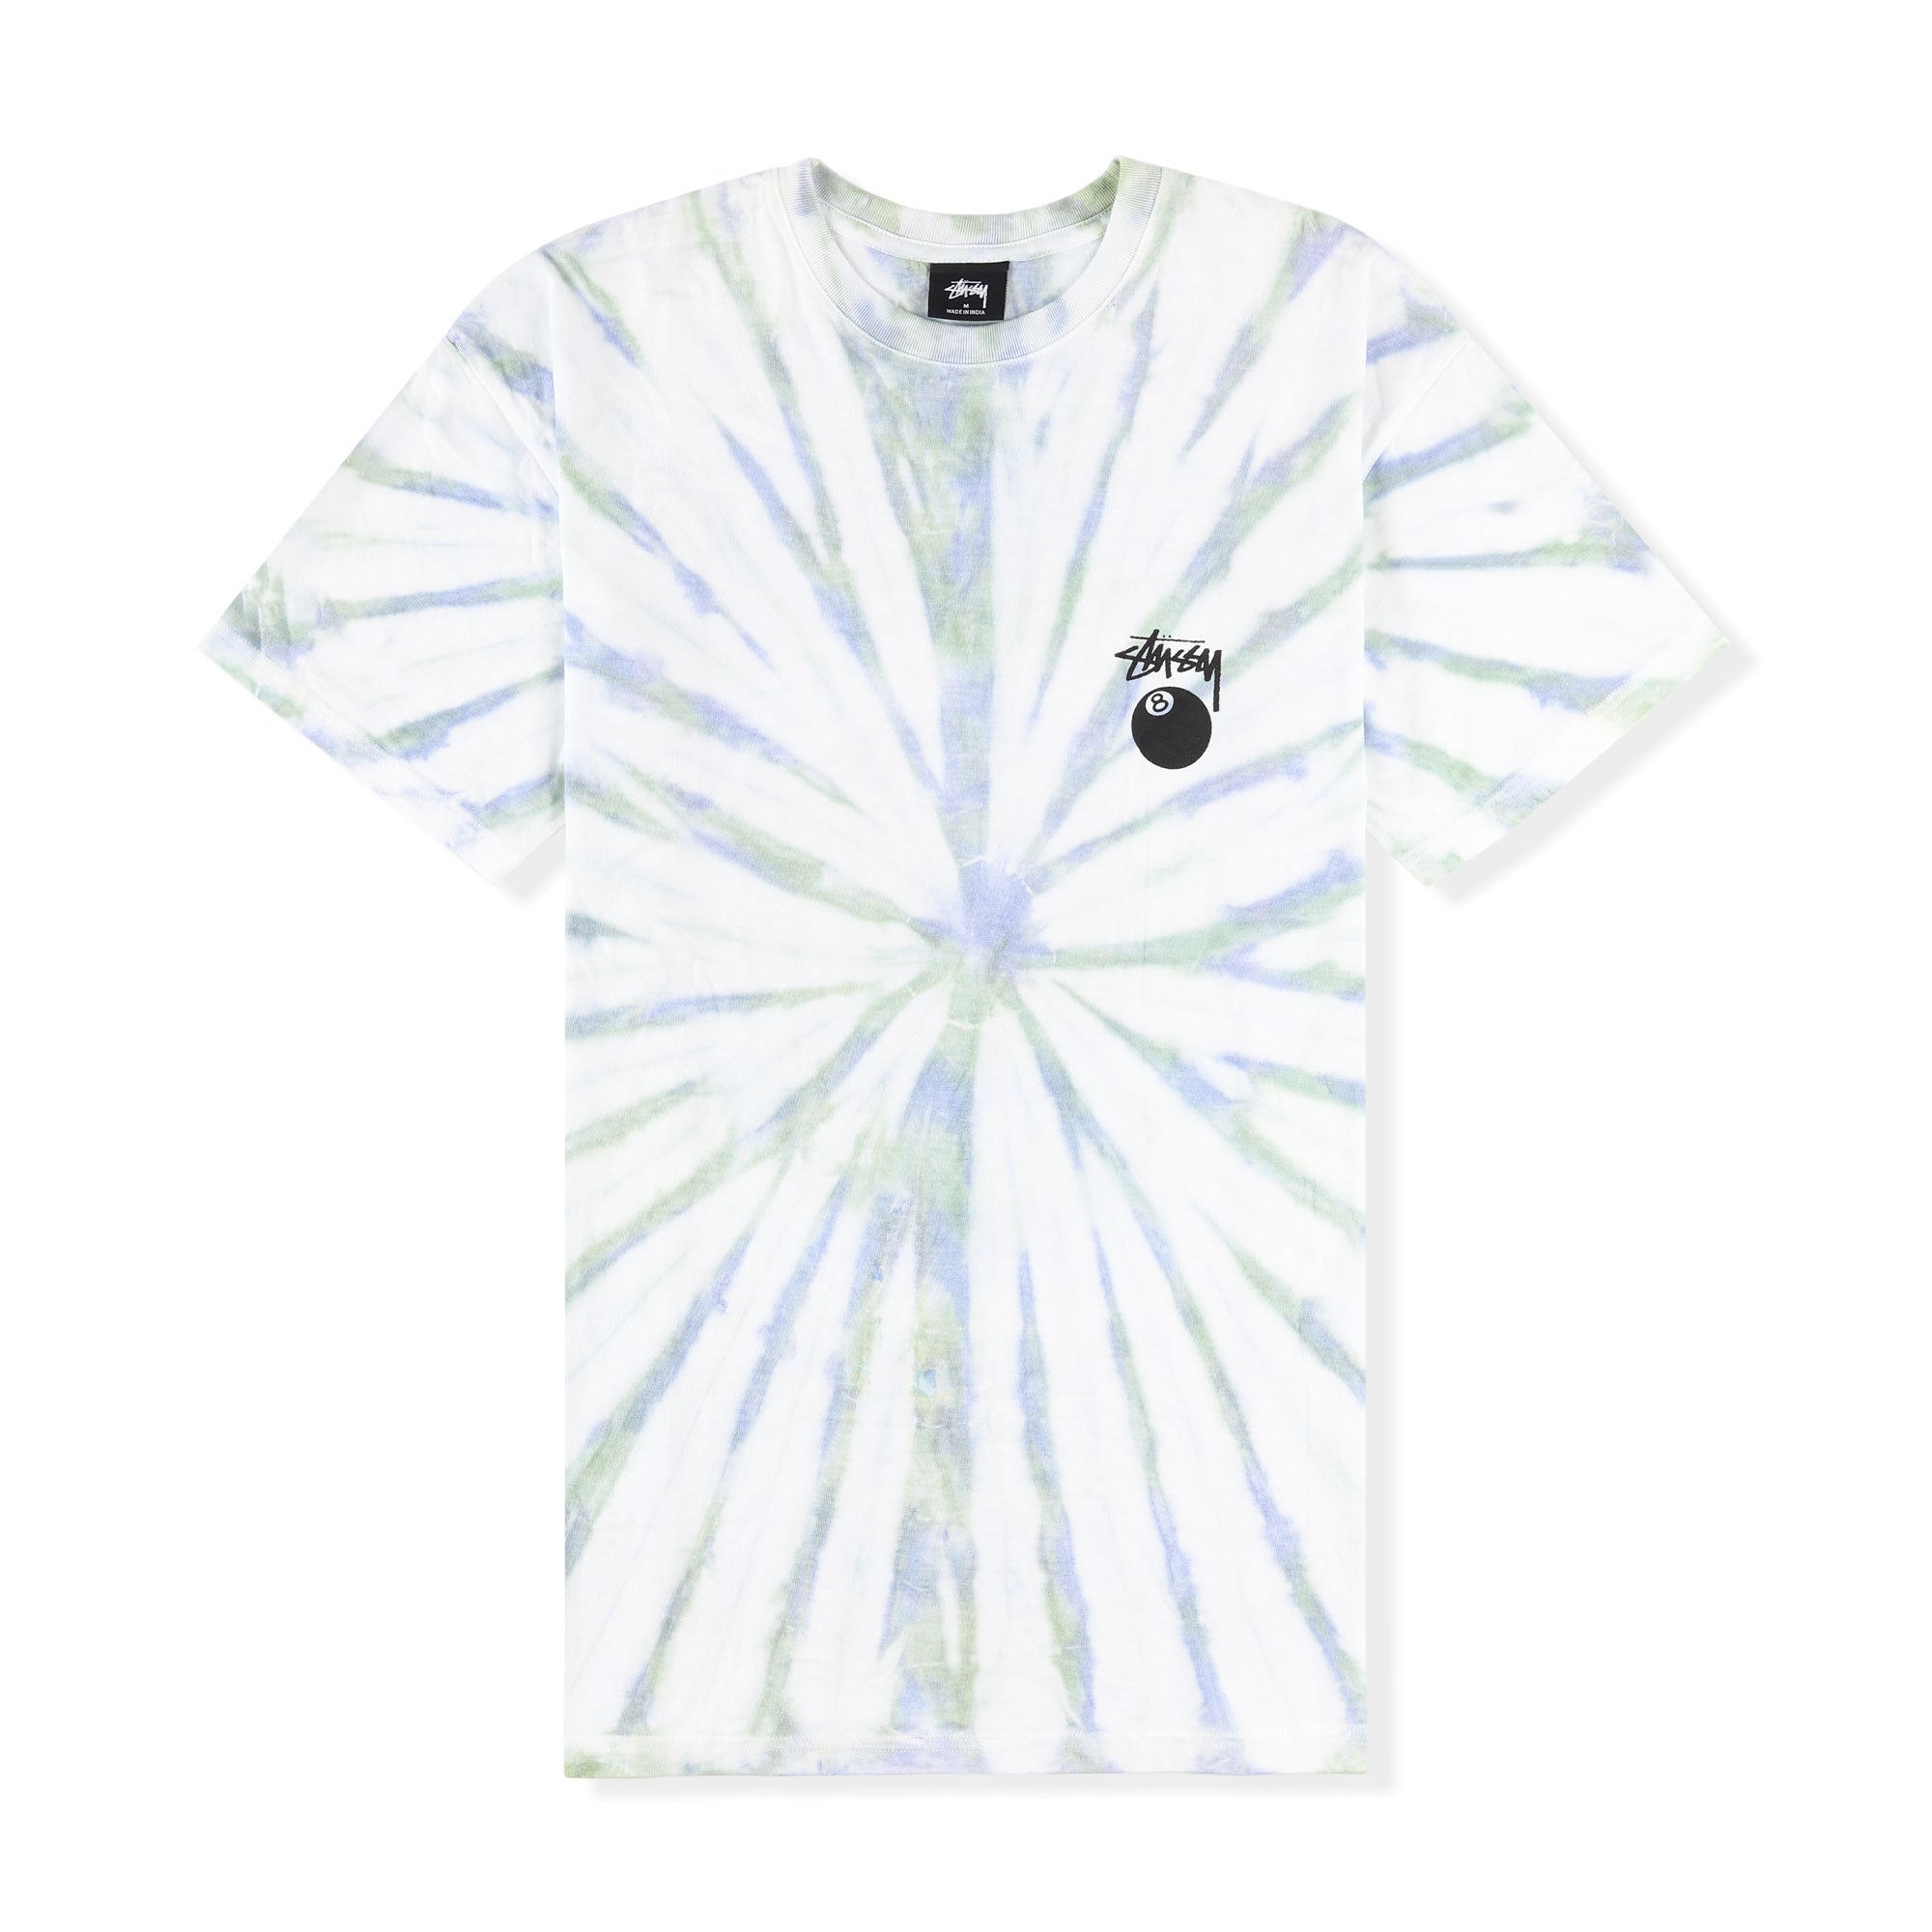 Stussy 8 Ball Tie Dye Tee Product Photo #1